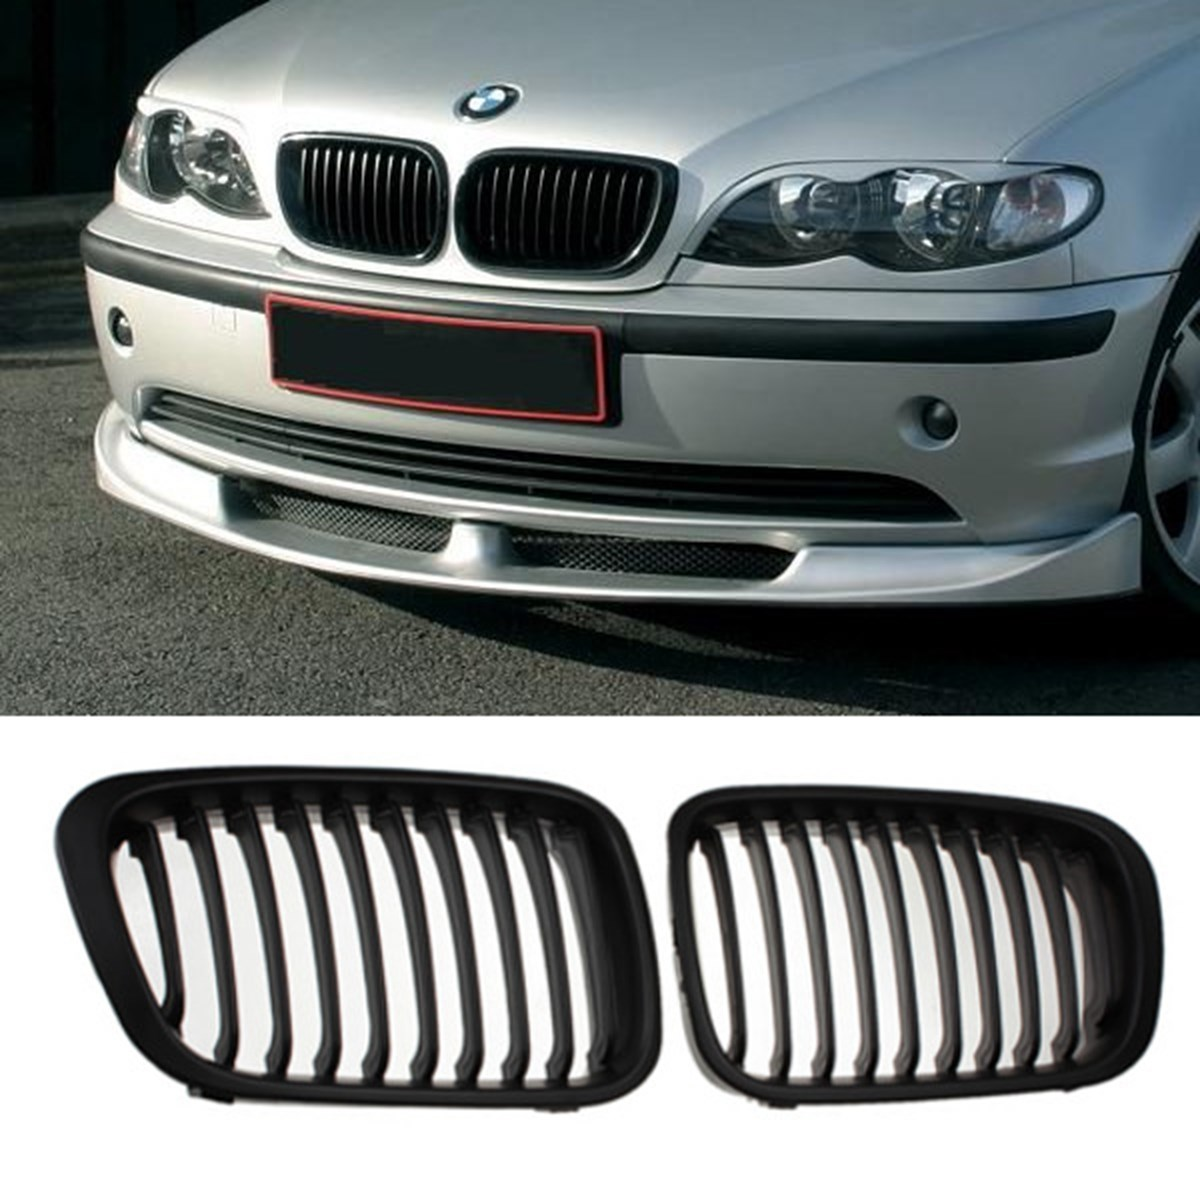 Matte black grille grill for bmw e46 1998 2001 4 door 320i 323i 325i 328i